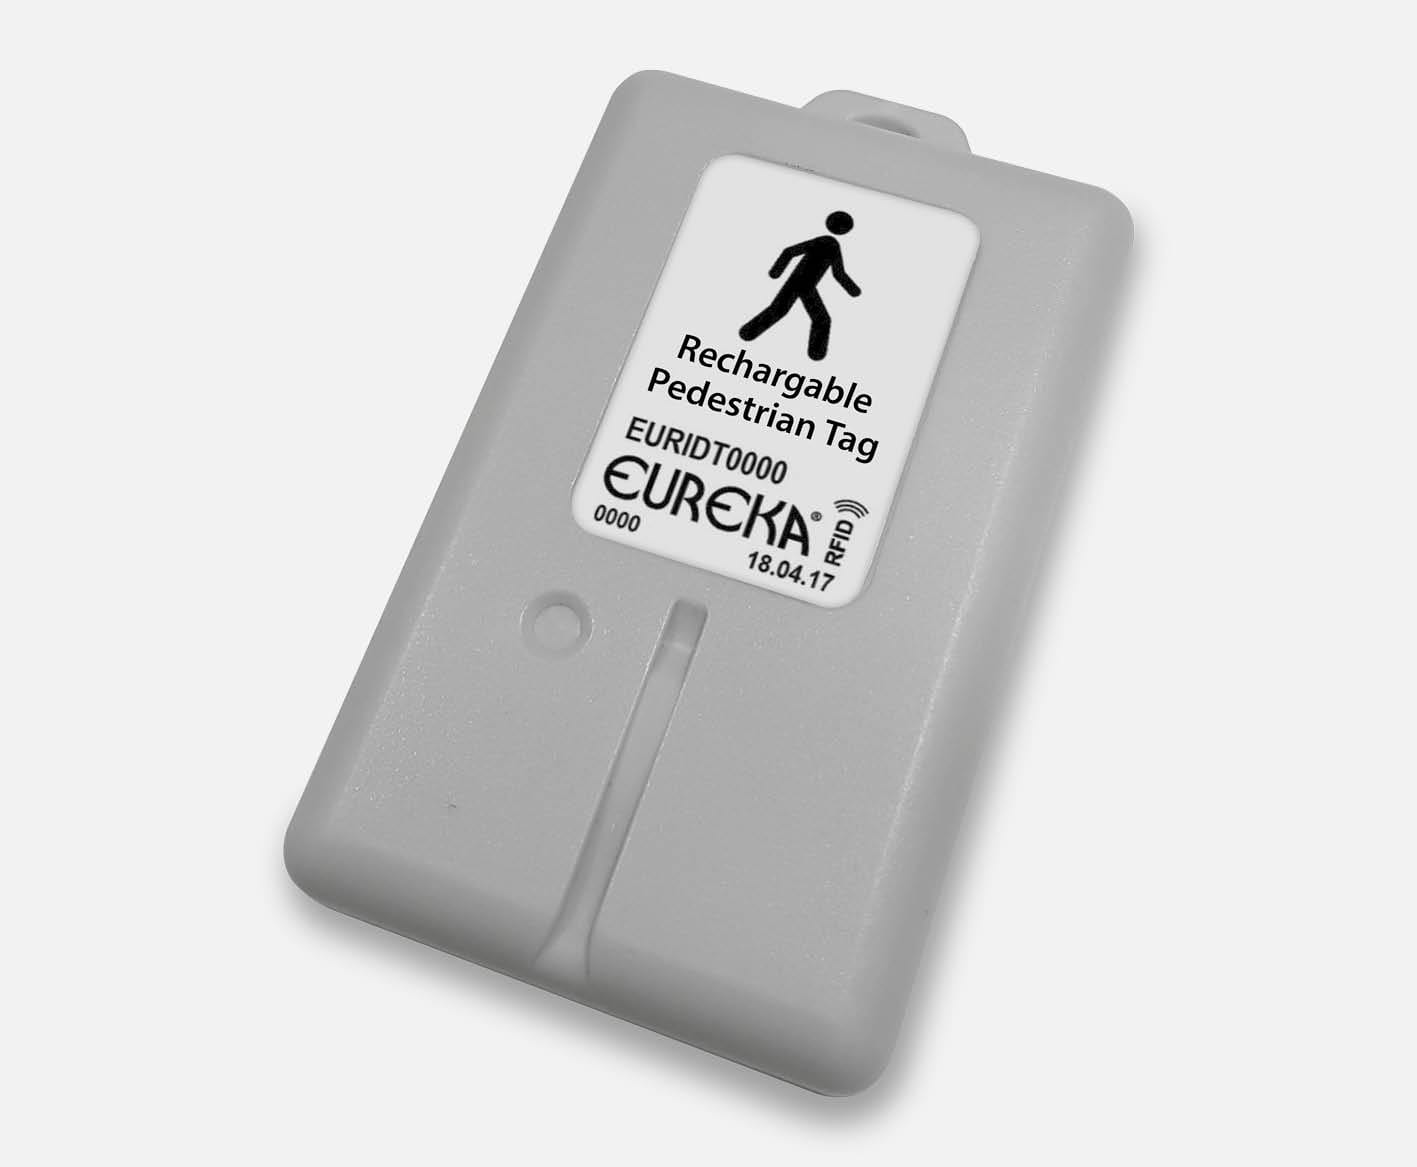 Pedestrian Safety Tag